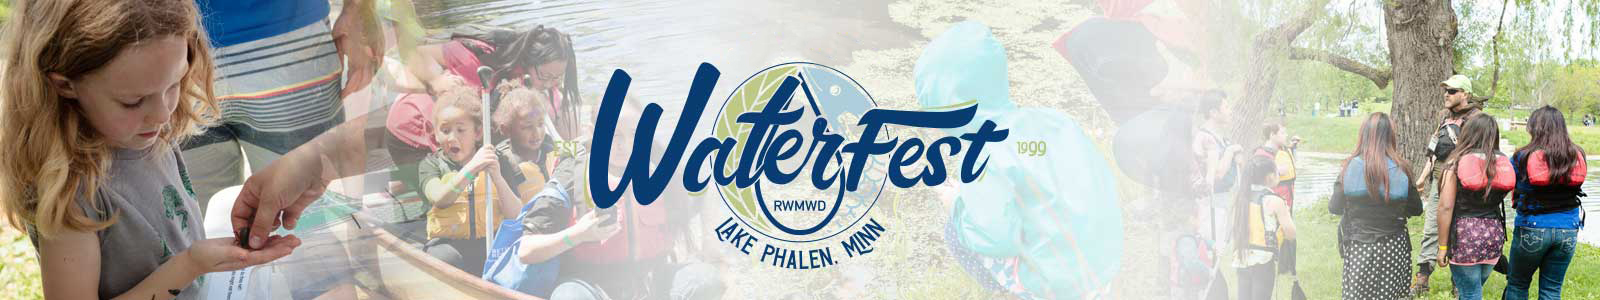 WaterFest photo collage and logo